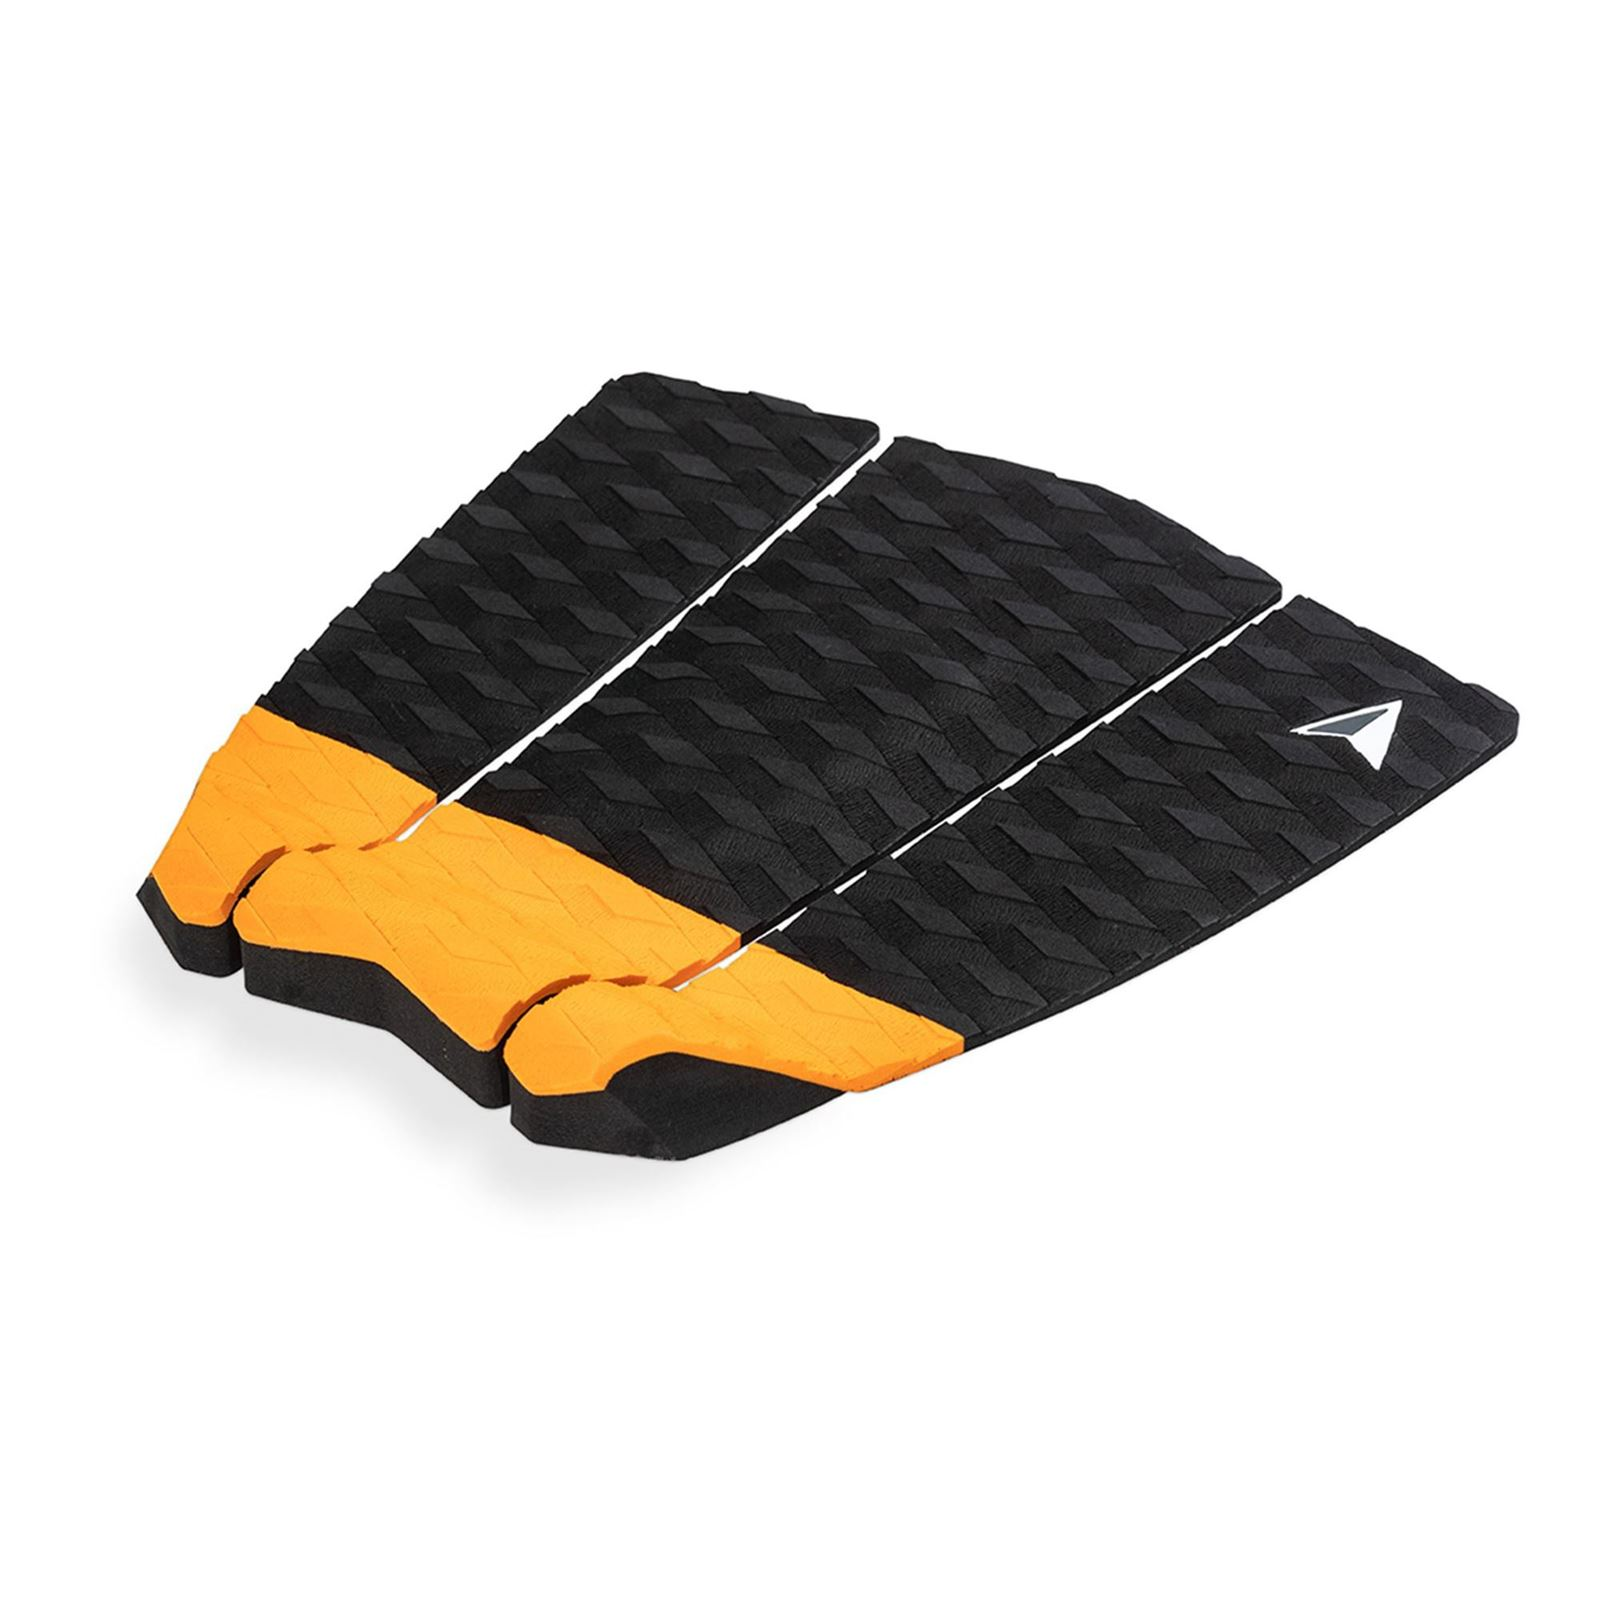 ROAM Footpad Deck Grip Traction Pad 3-tlg Orange